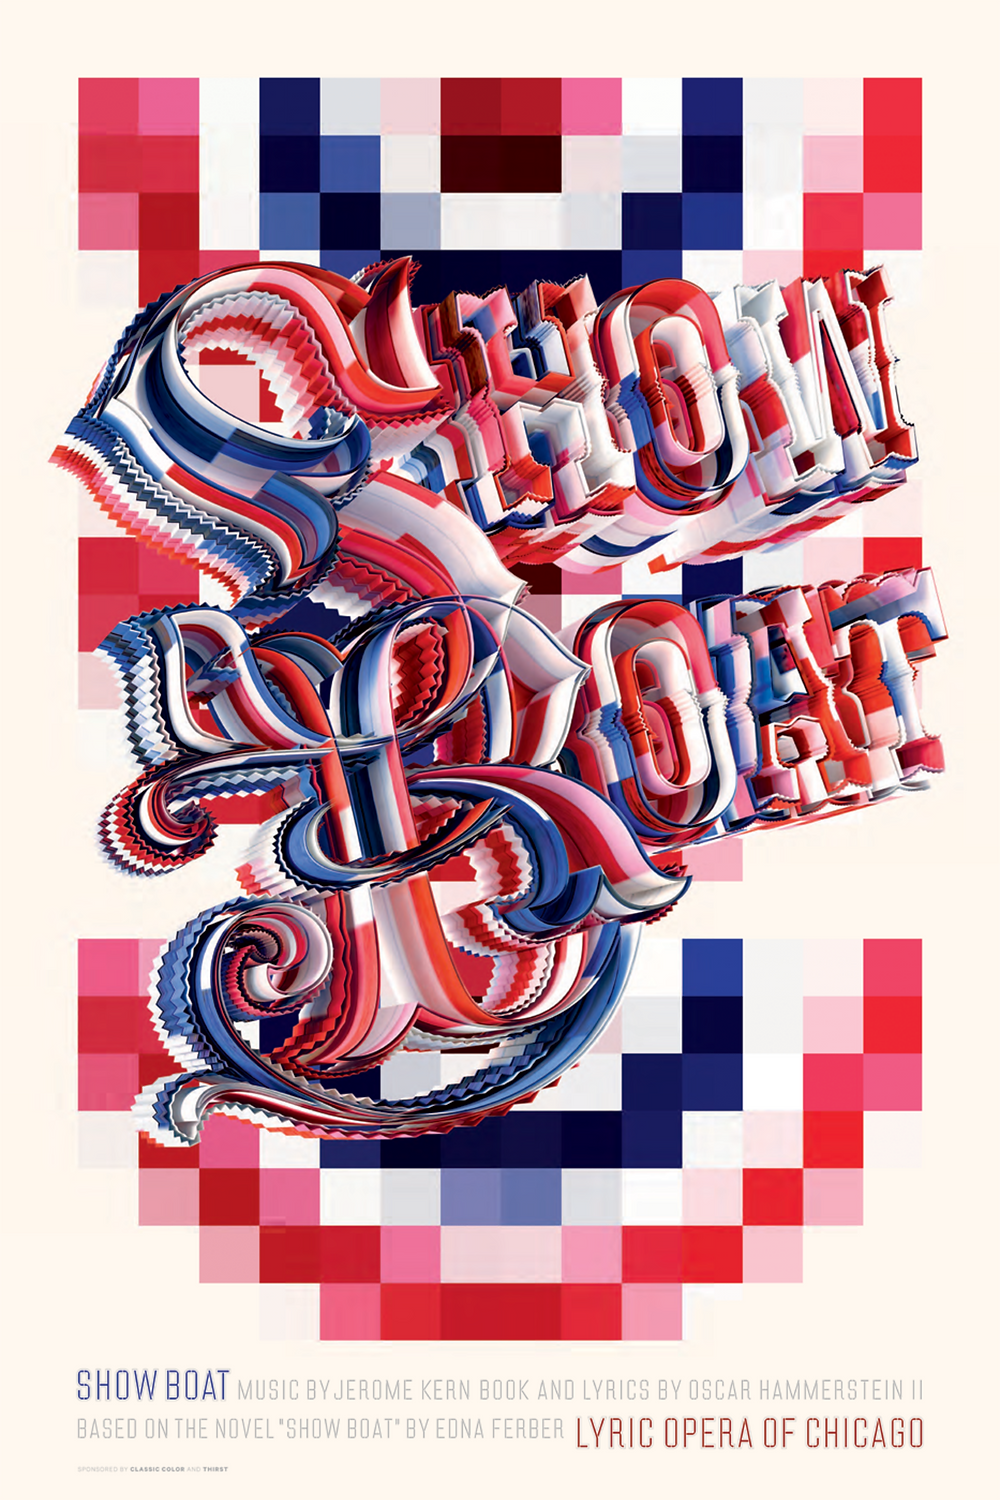 Lyric Opera Commemorative posters for the Lyric Opera productions of Showboat, 2011 and Tannhaüser, 1988.